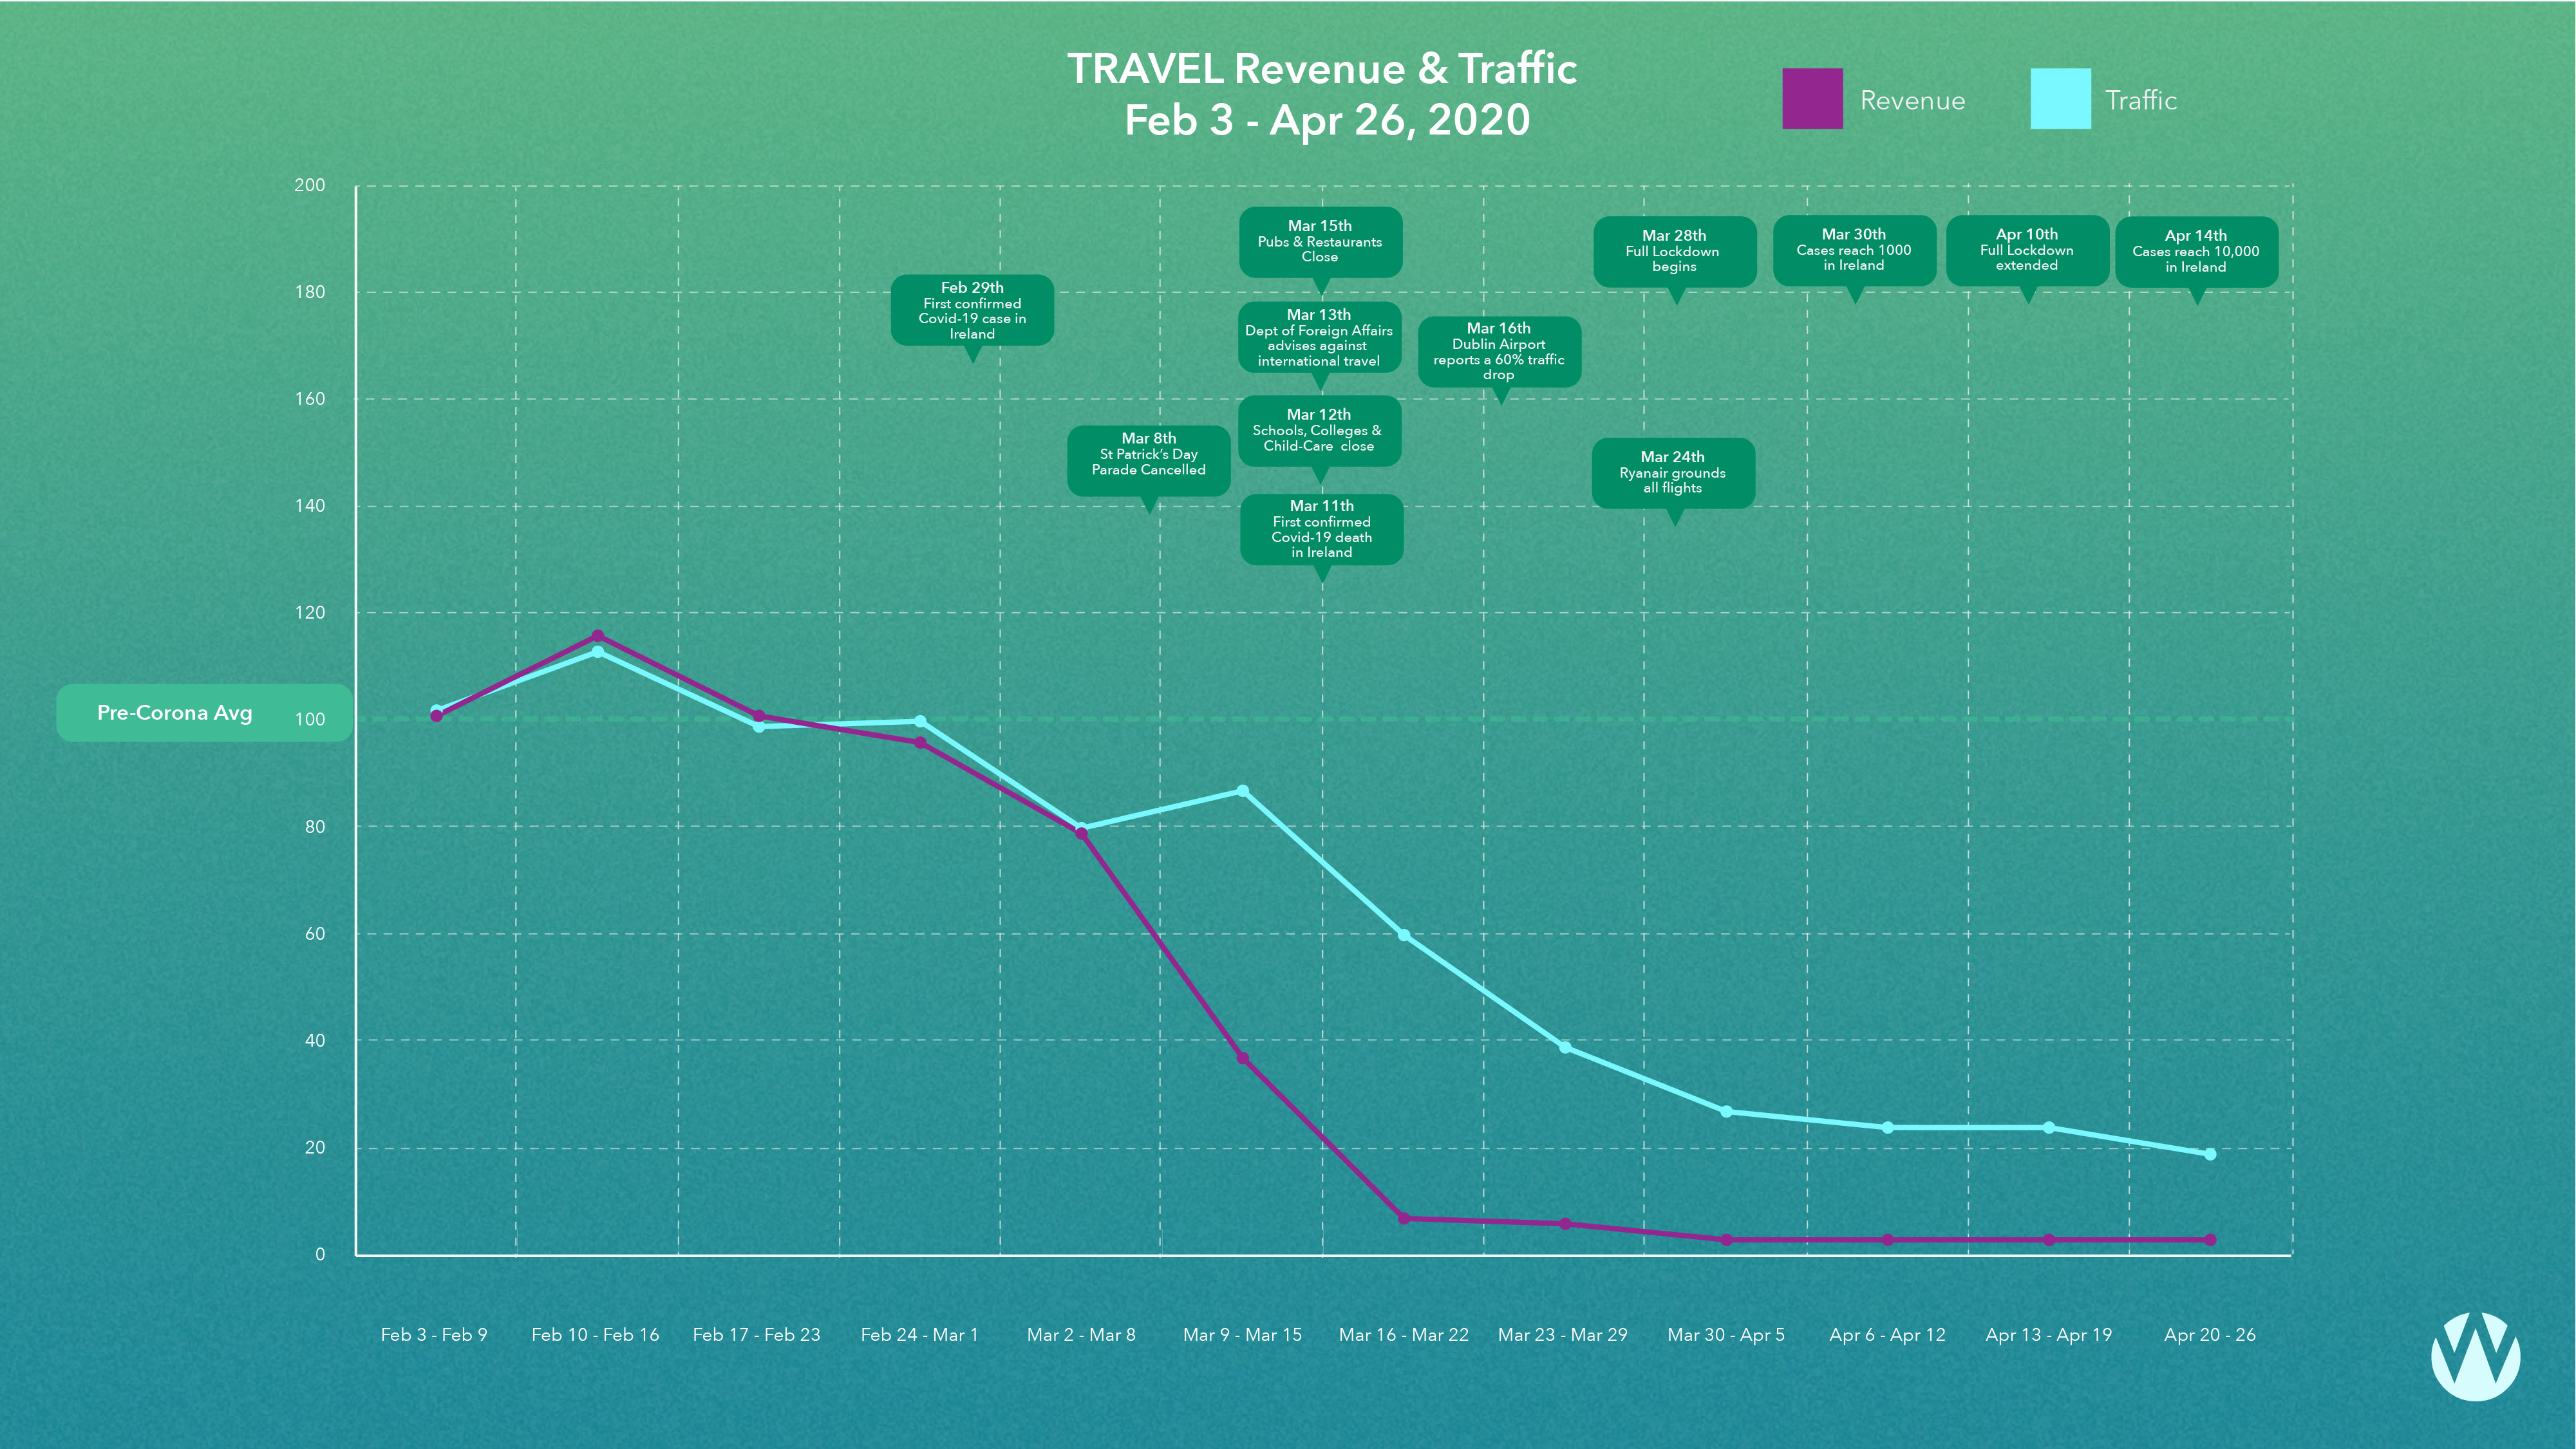 Travel Traffic and Revenue